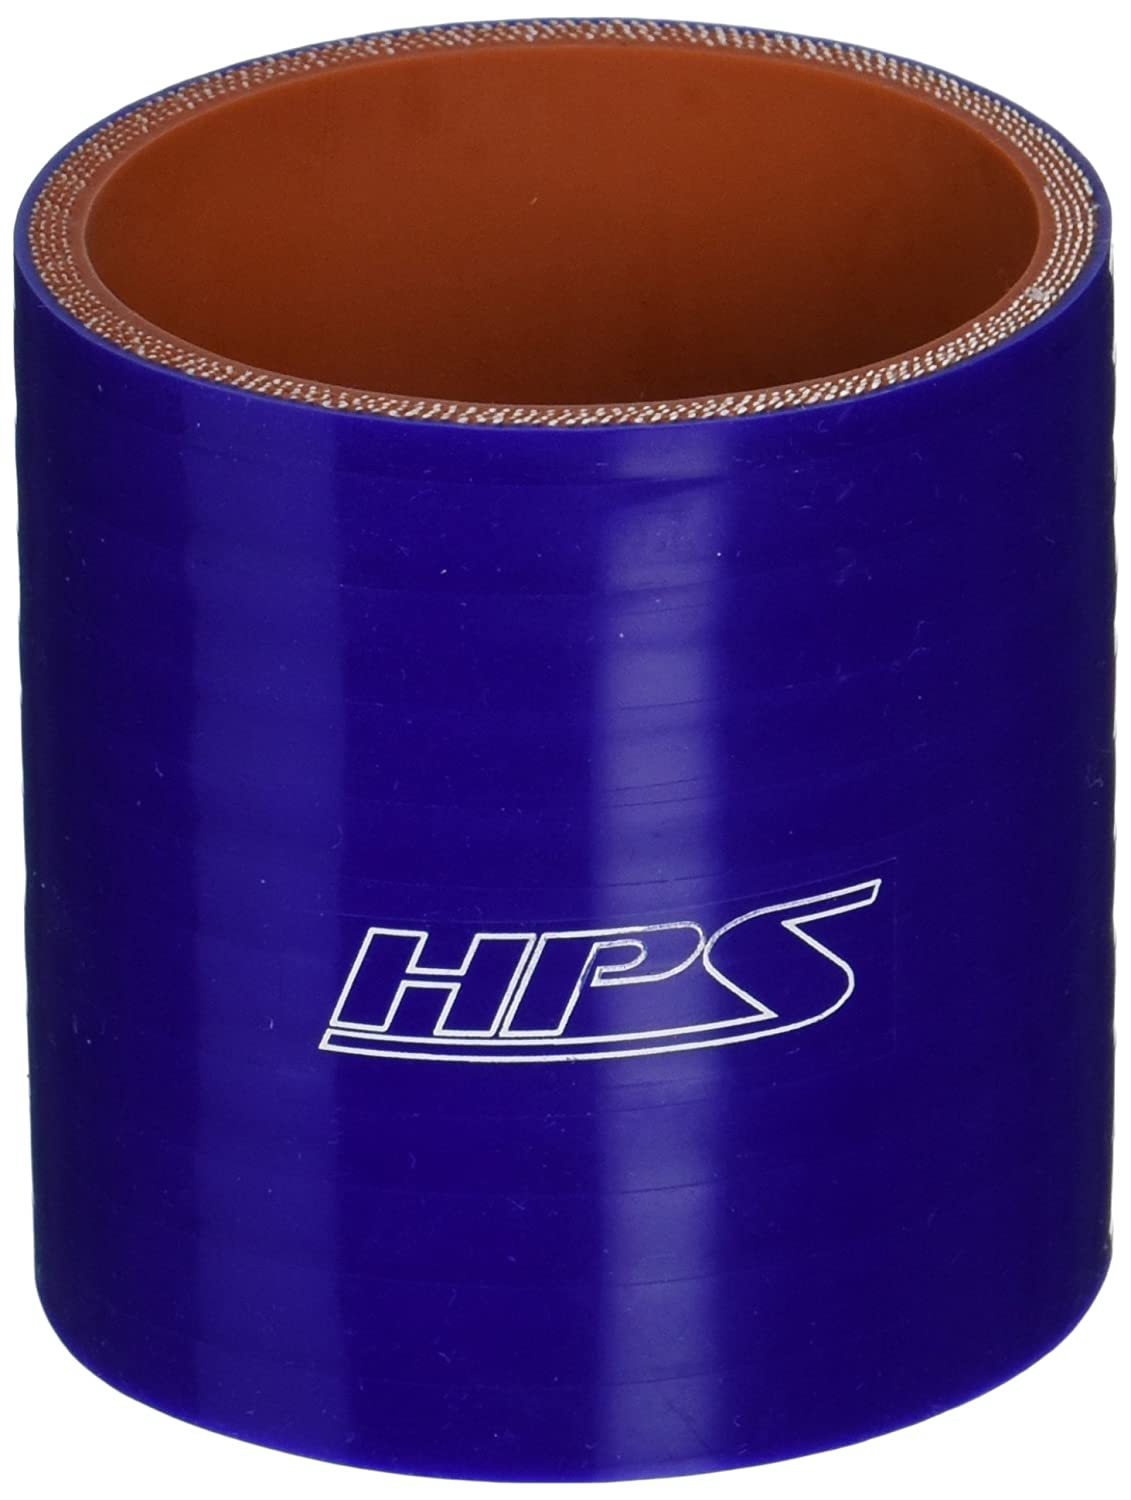 HPS HTSC-250-BLUE Silicone High Temperature 4-ply Reinforced Straight Coupler Hose, 100 PSI Maximum Pressure, 3' Length, 2-1/2' ID, Blue 3 Length 2-1/2 ID HPS Silicone Hoses